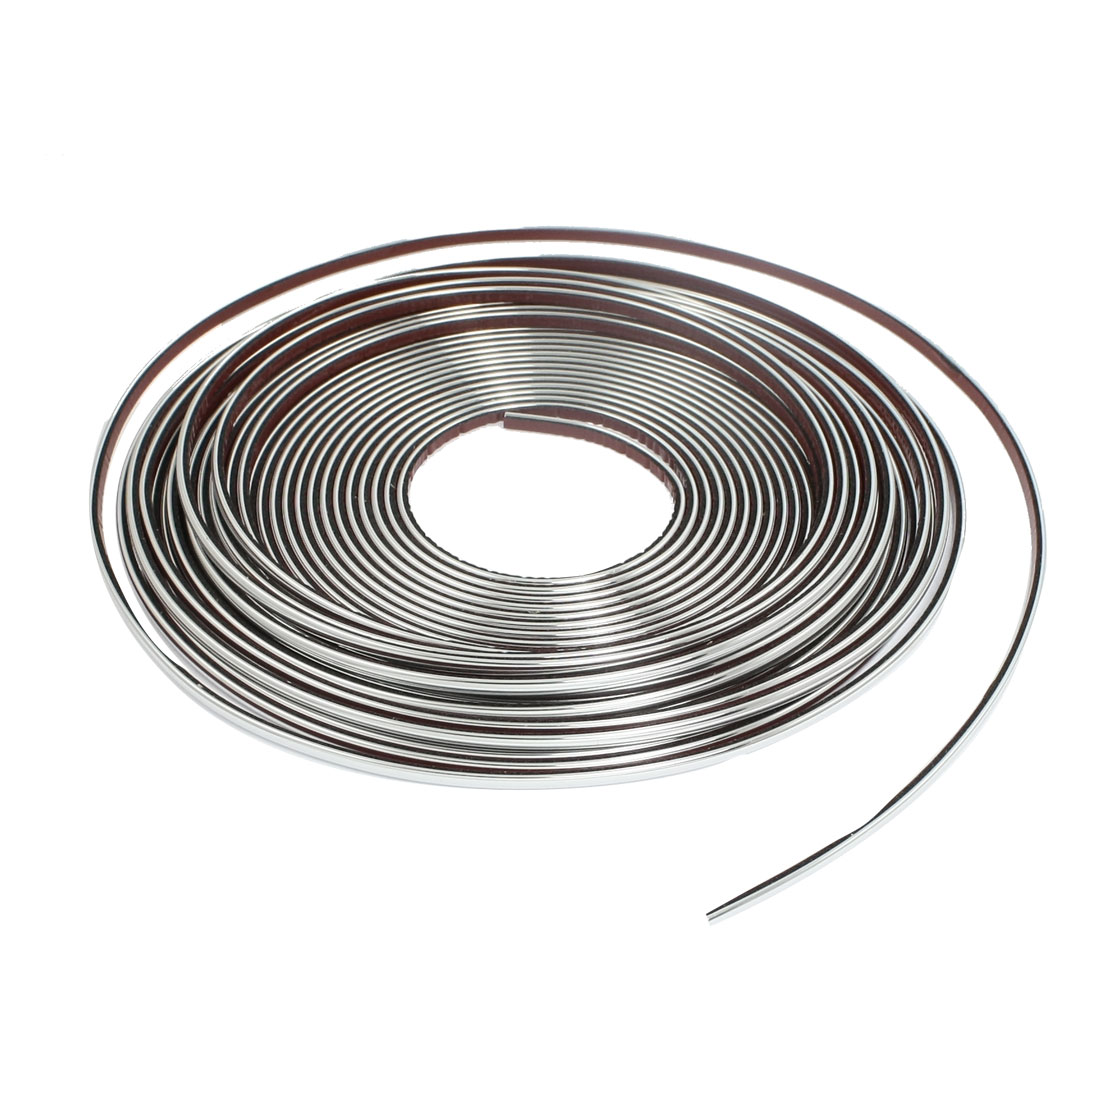 Car Window Silver Tone Soft PVC Adhesive Back Moulding Trim Strip Line 15M x 4mm